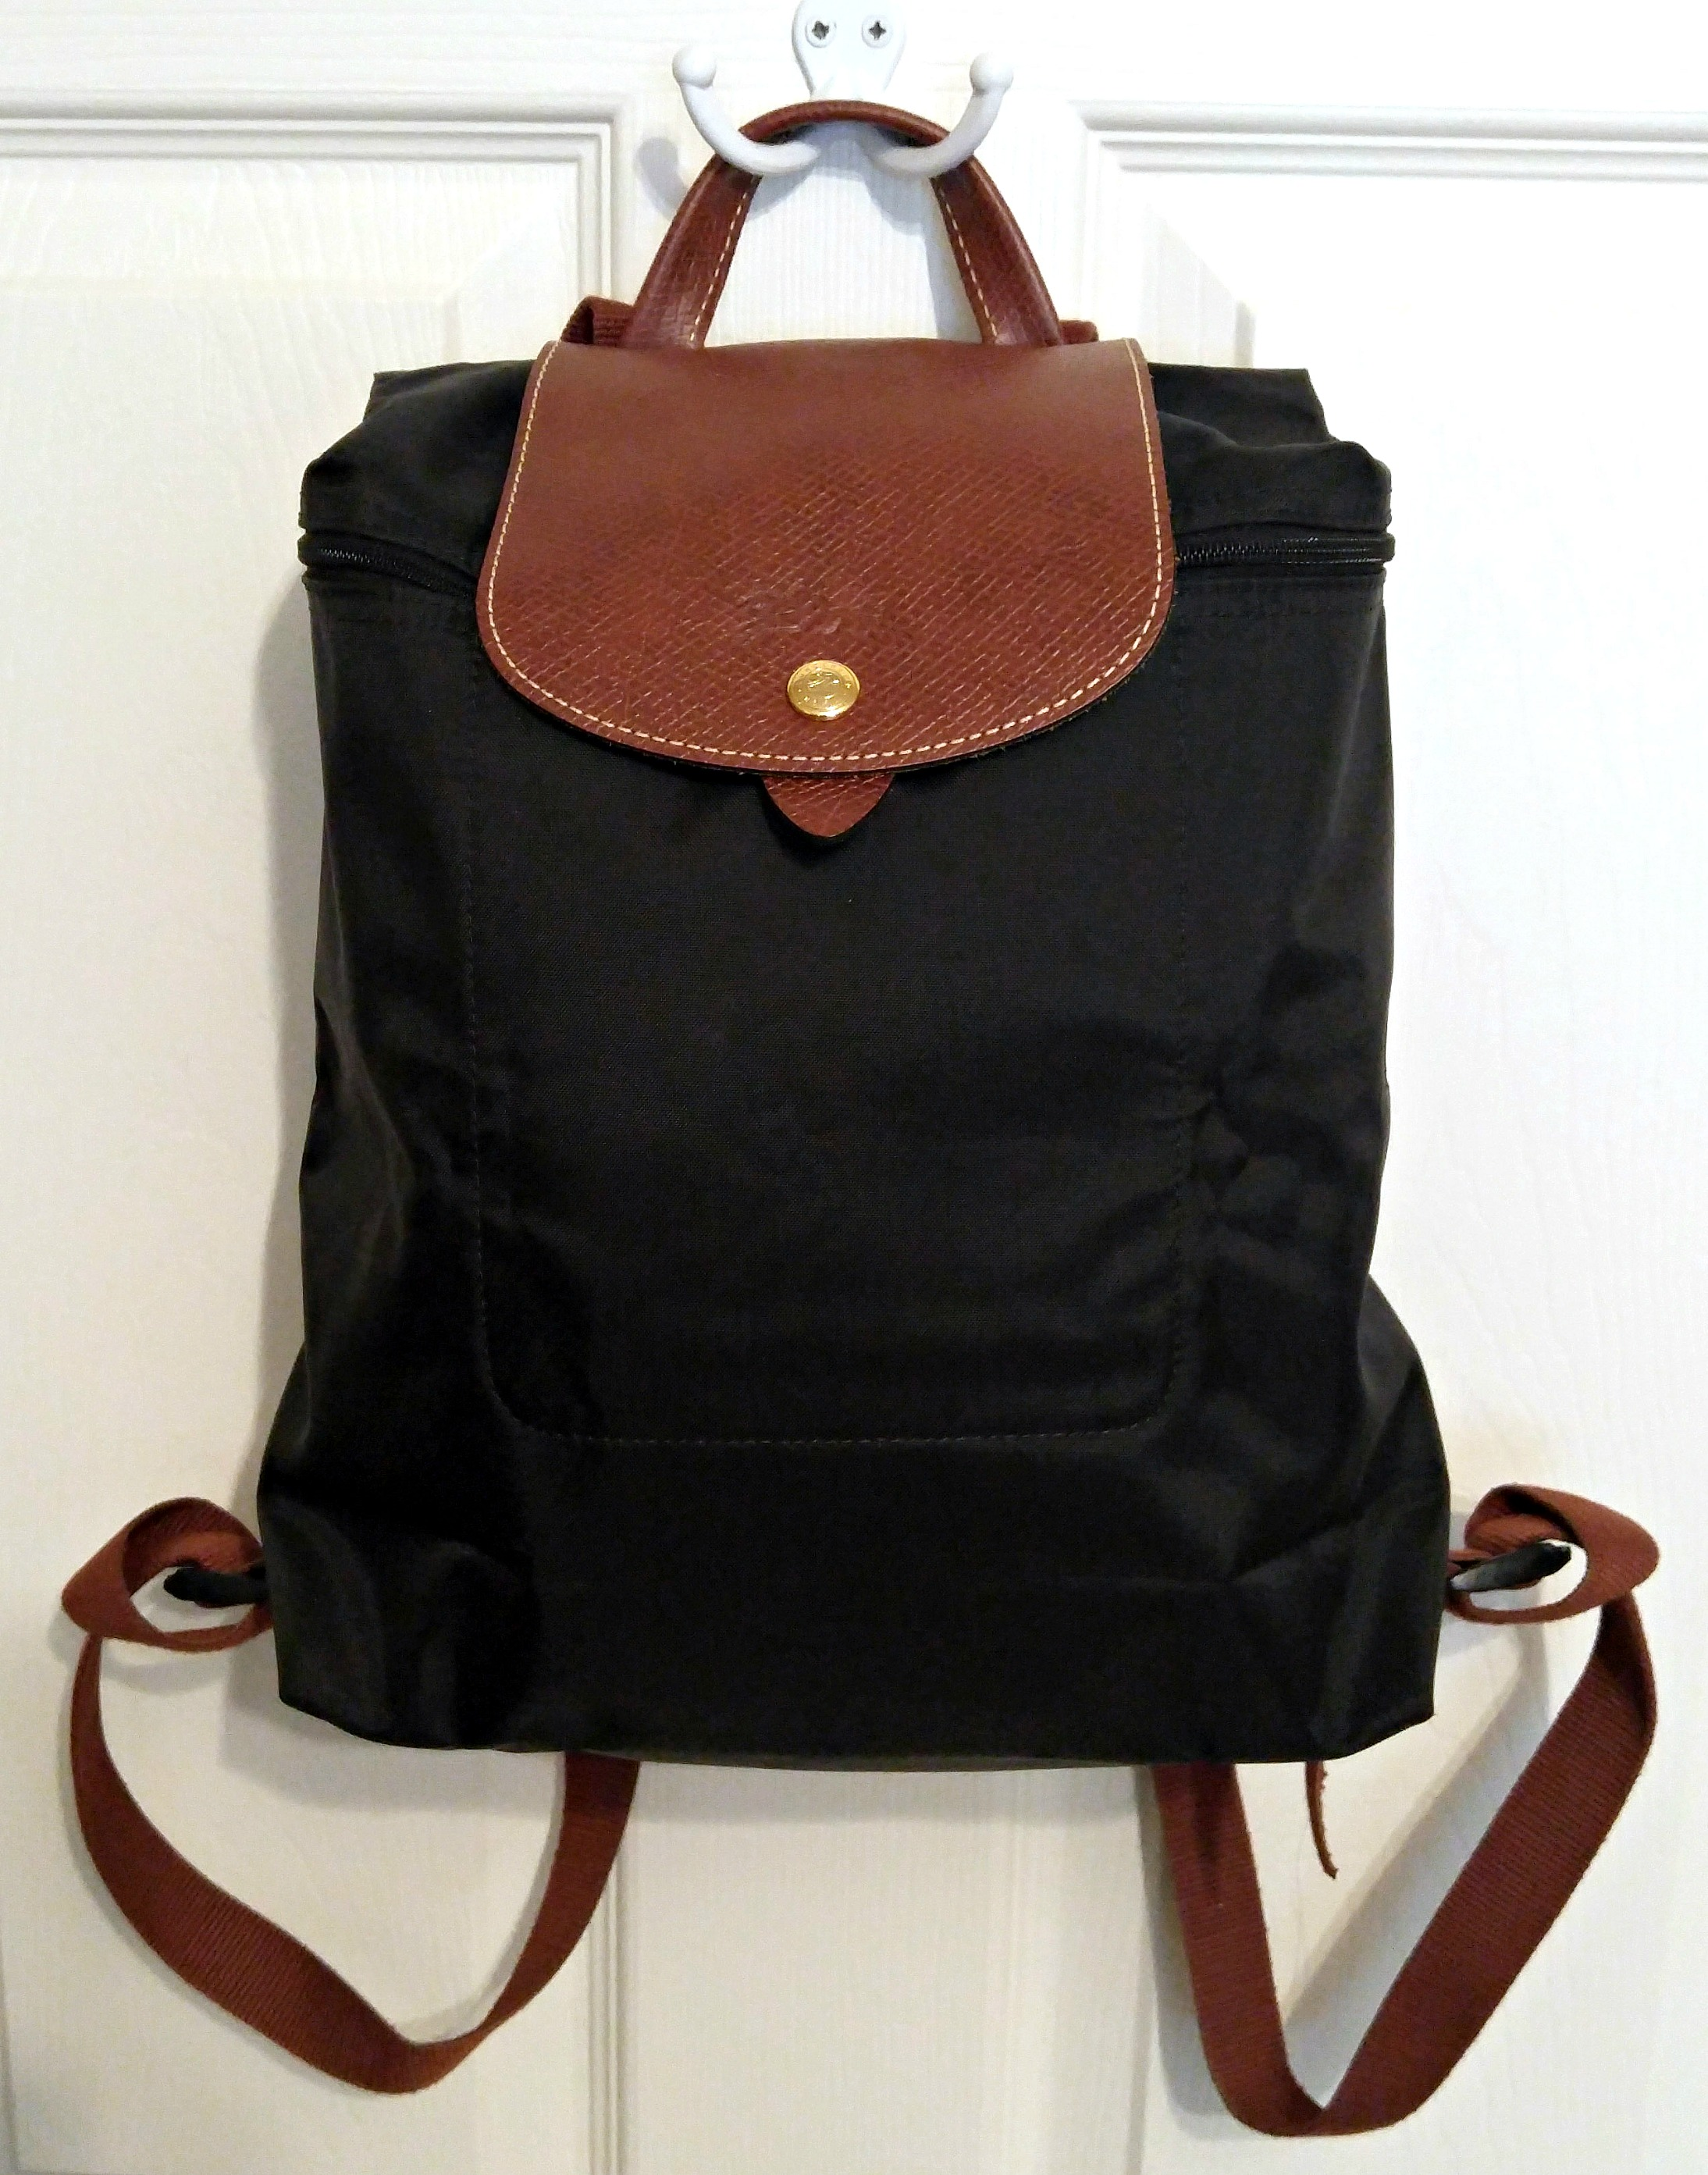 Le ReviewThe Cons Longchamp Pros Pliage Backpack And TlJFK1c